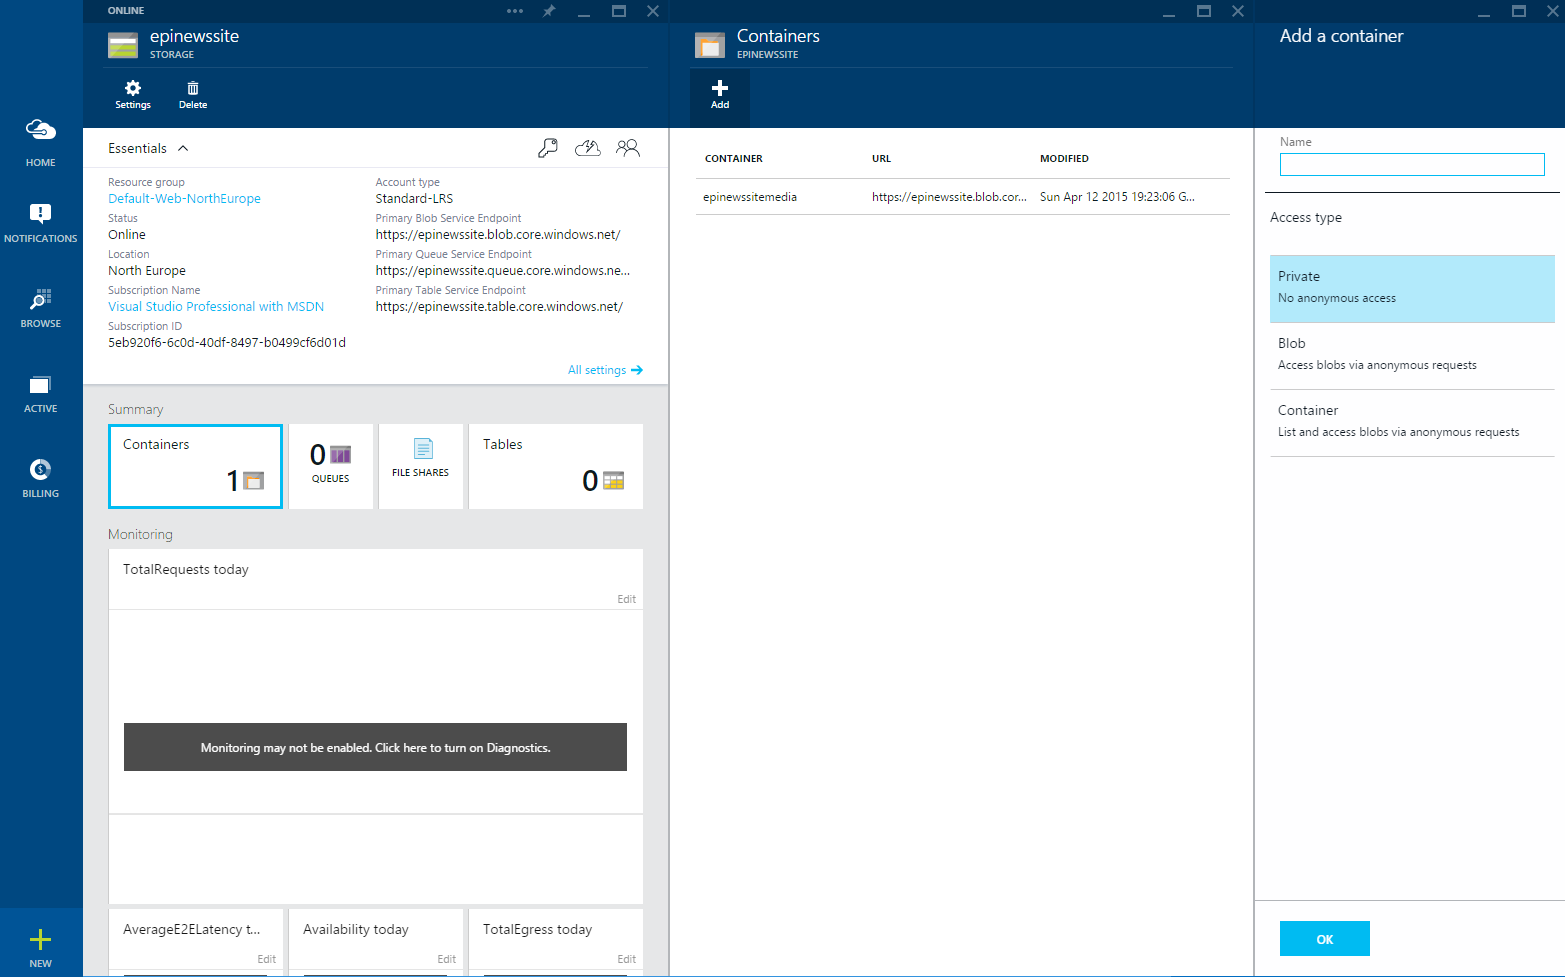 Azure infrastructure usage for EPiServer data import